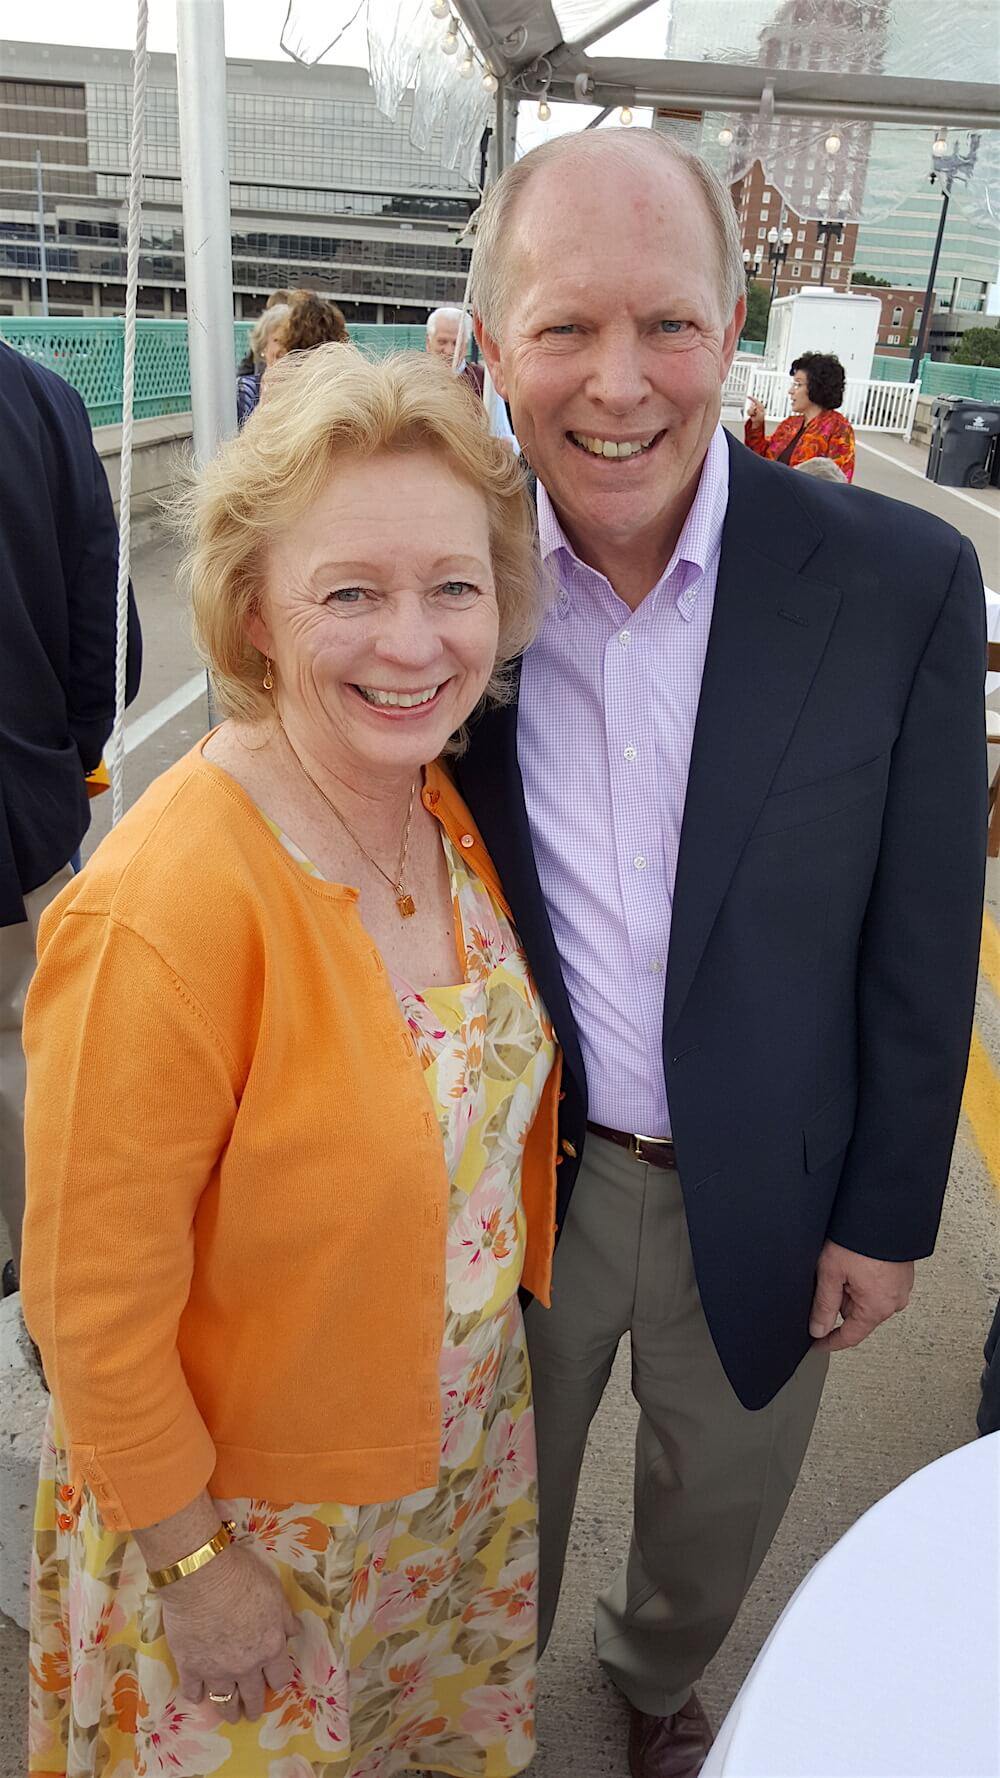 Federal Judge Pam Reeves and her husband, city law director, Charles Swanson.